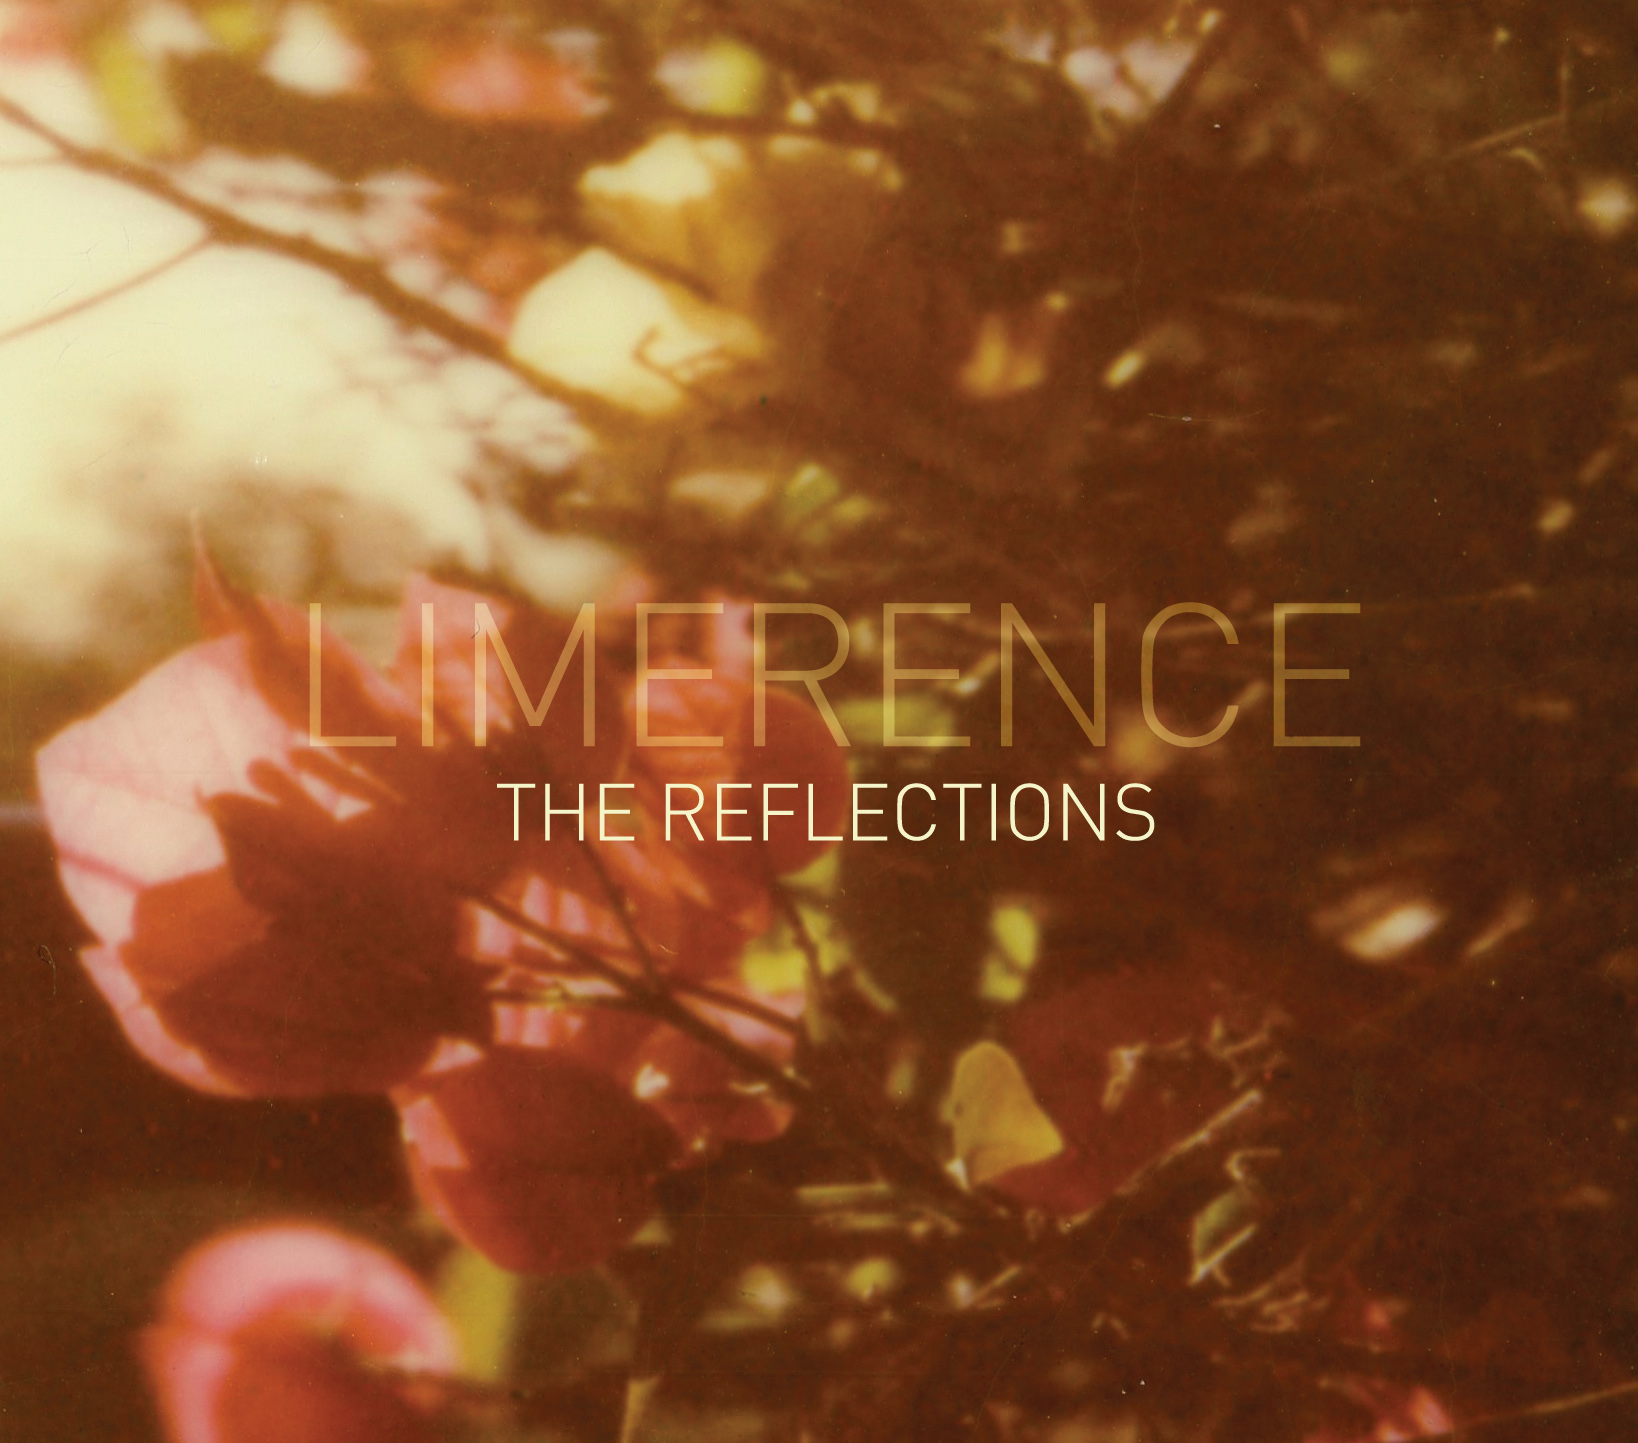 Reflections_limerence_hires_coverart